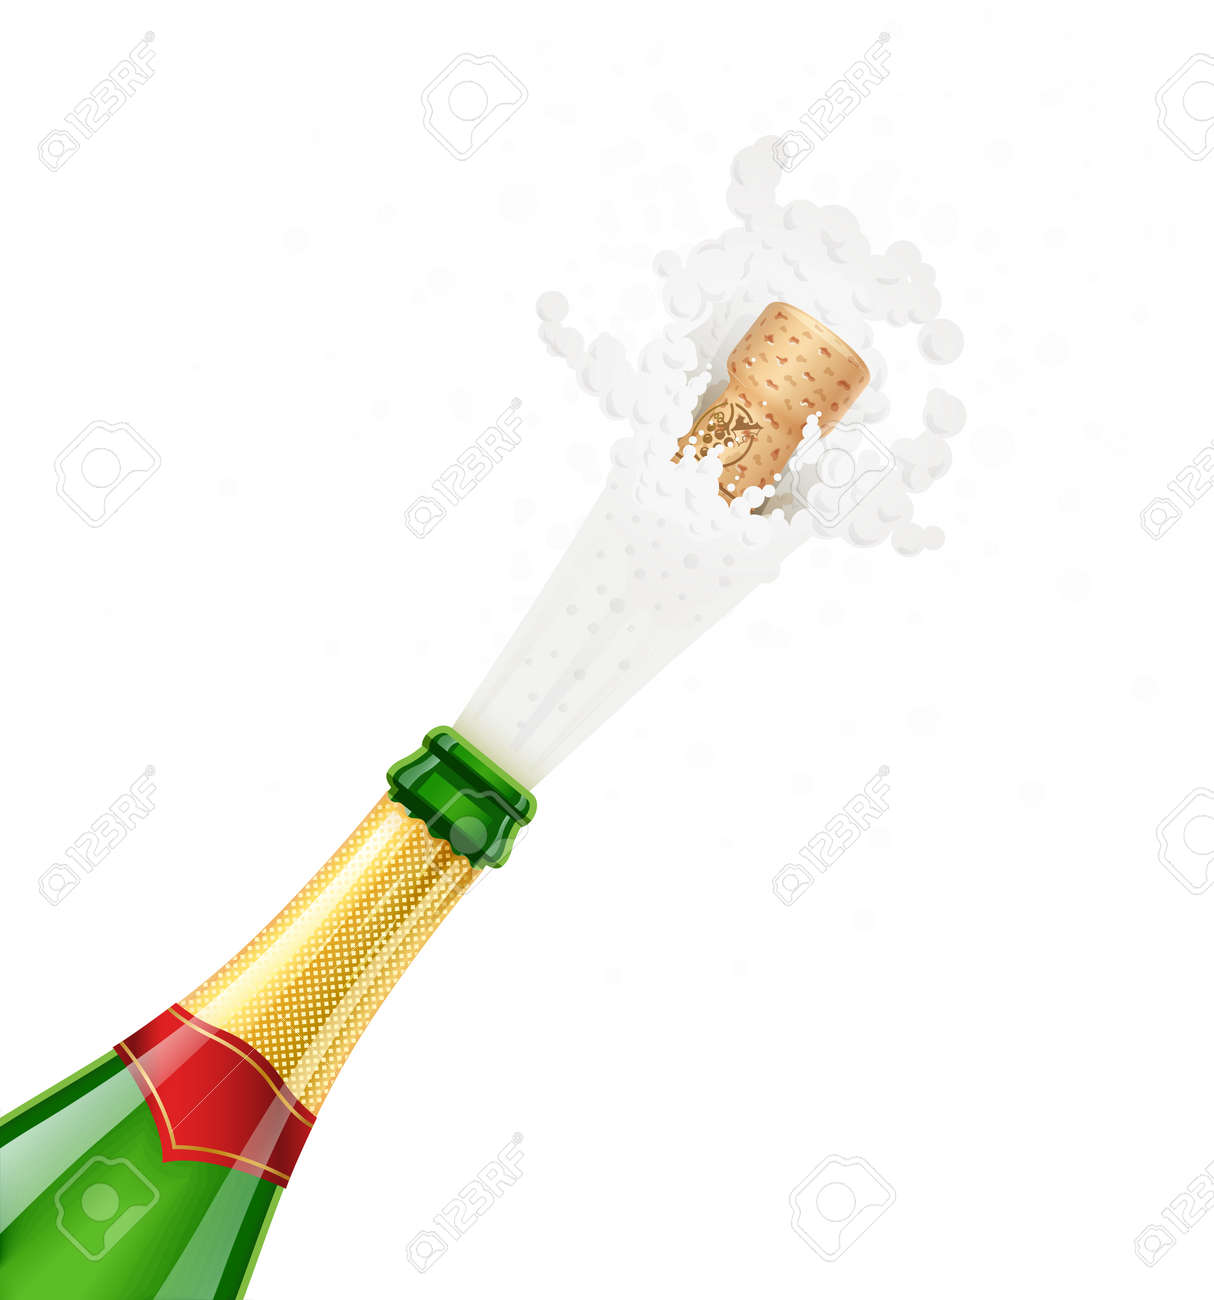 Champagne Green Bottle Explode Traditional French Alcohol Drink